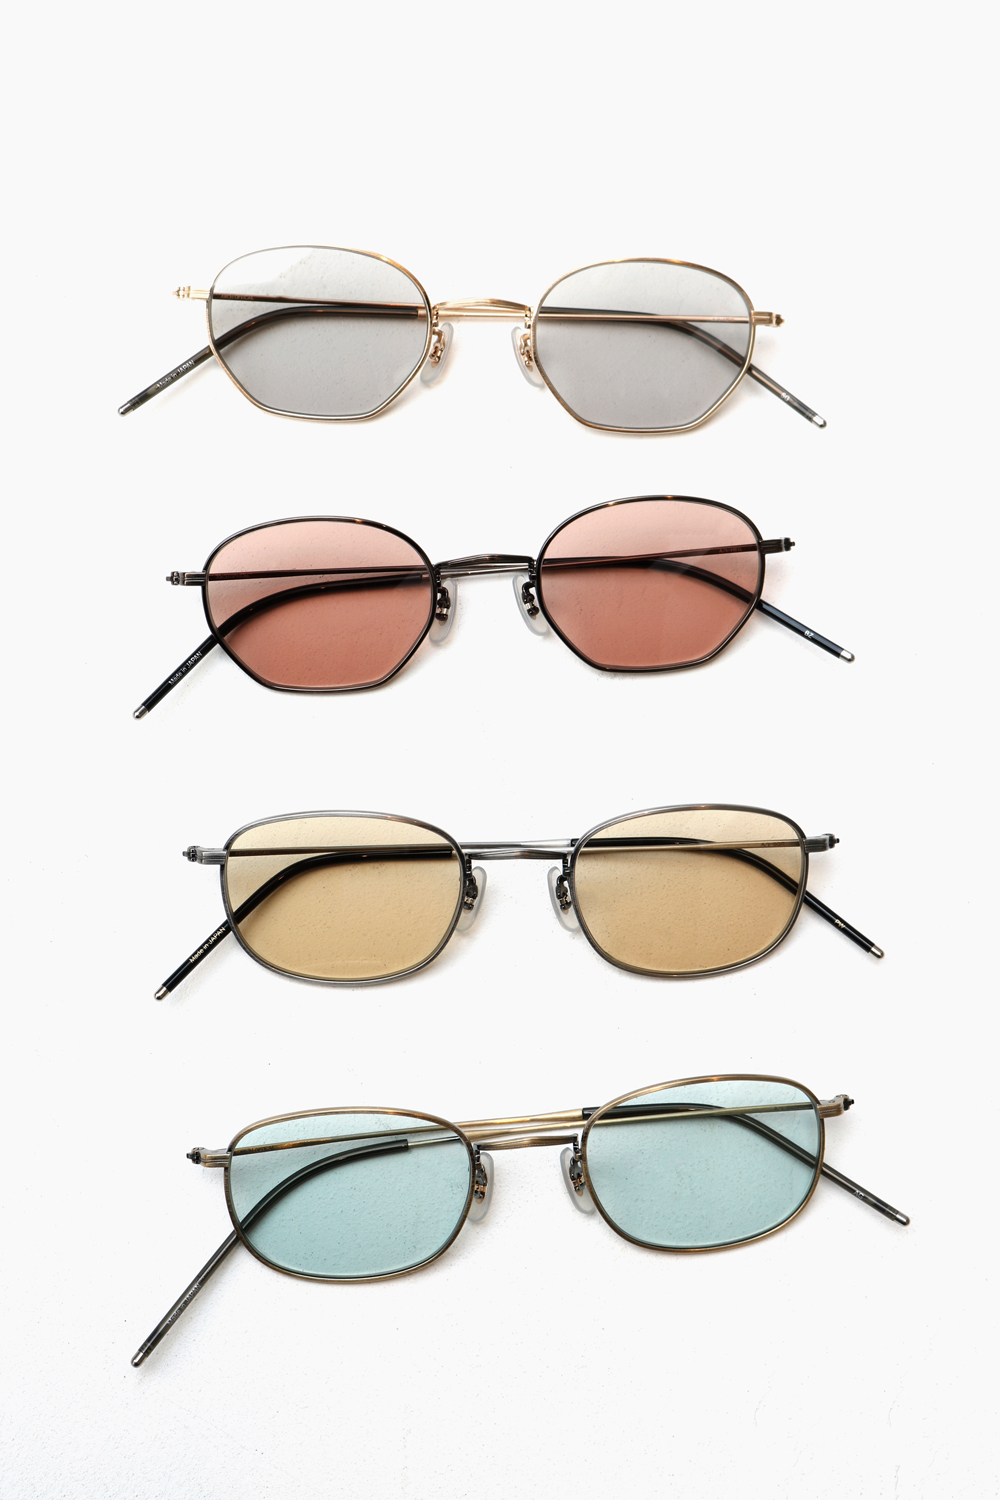 ARCH OPTICAL|SUNGLASSES